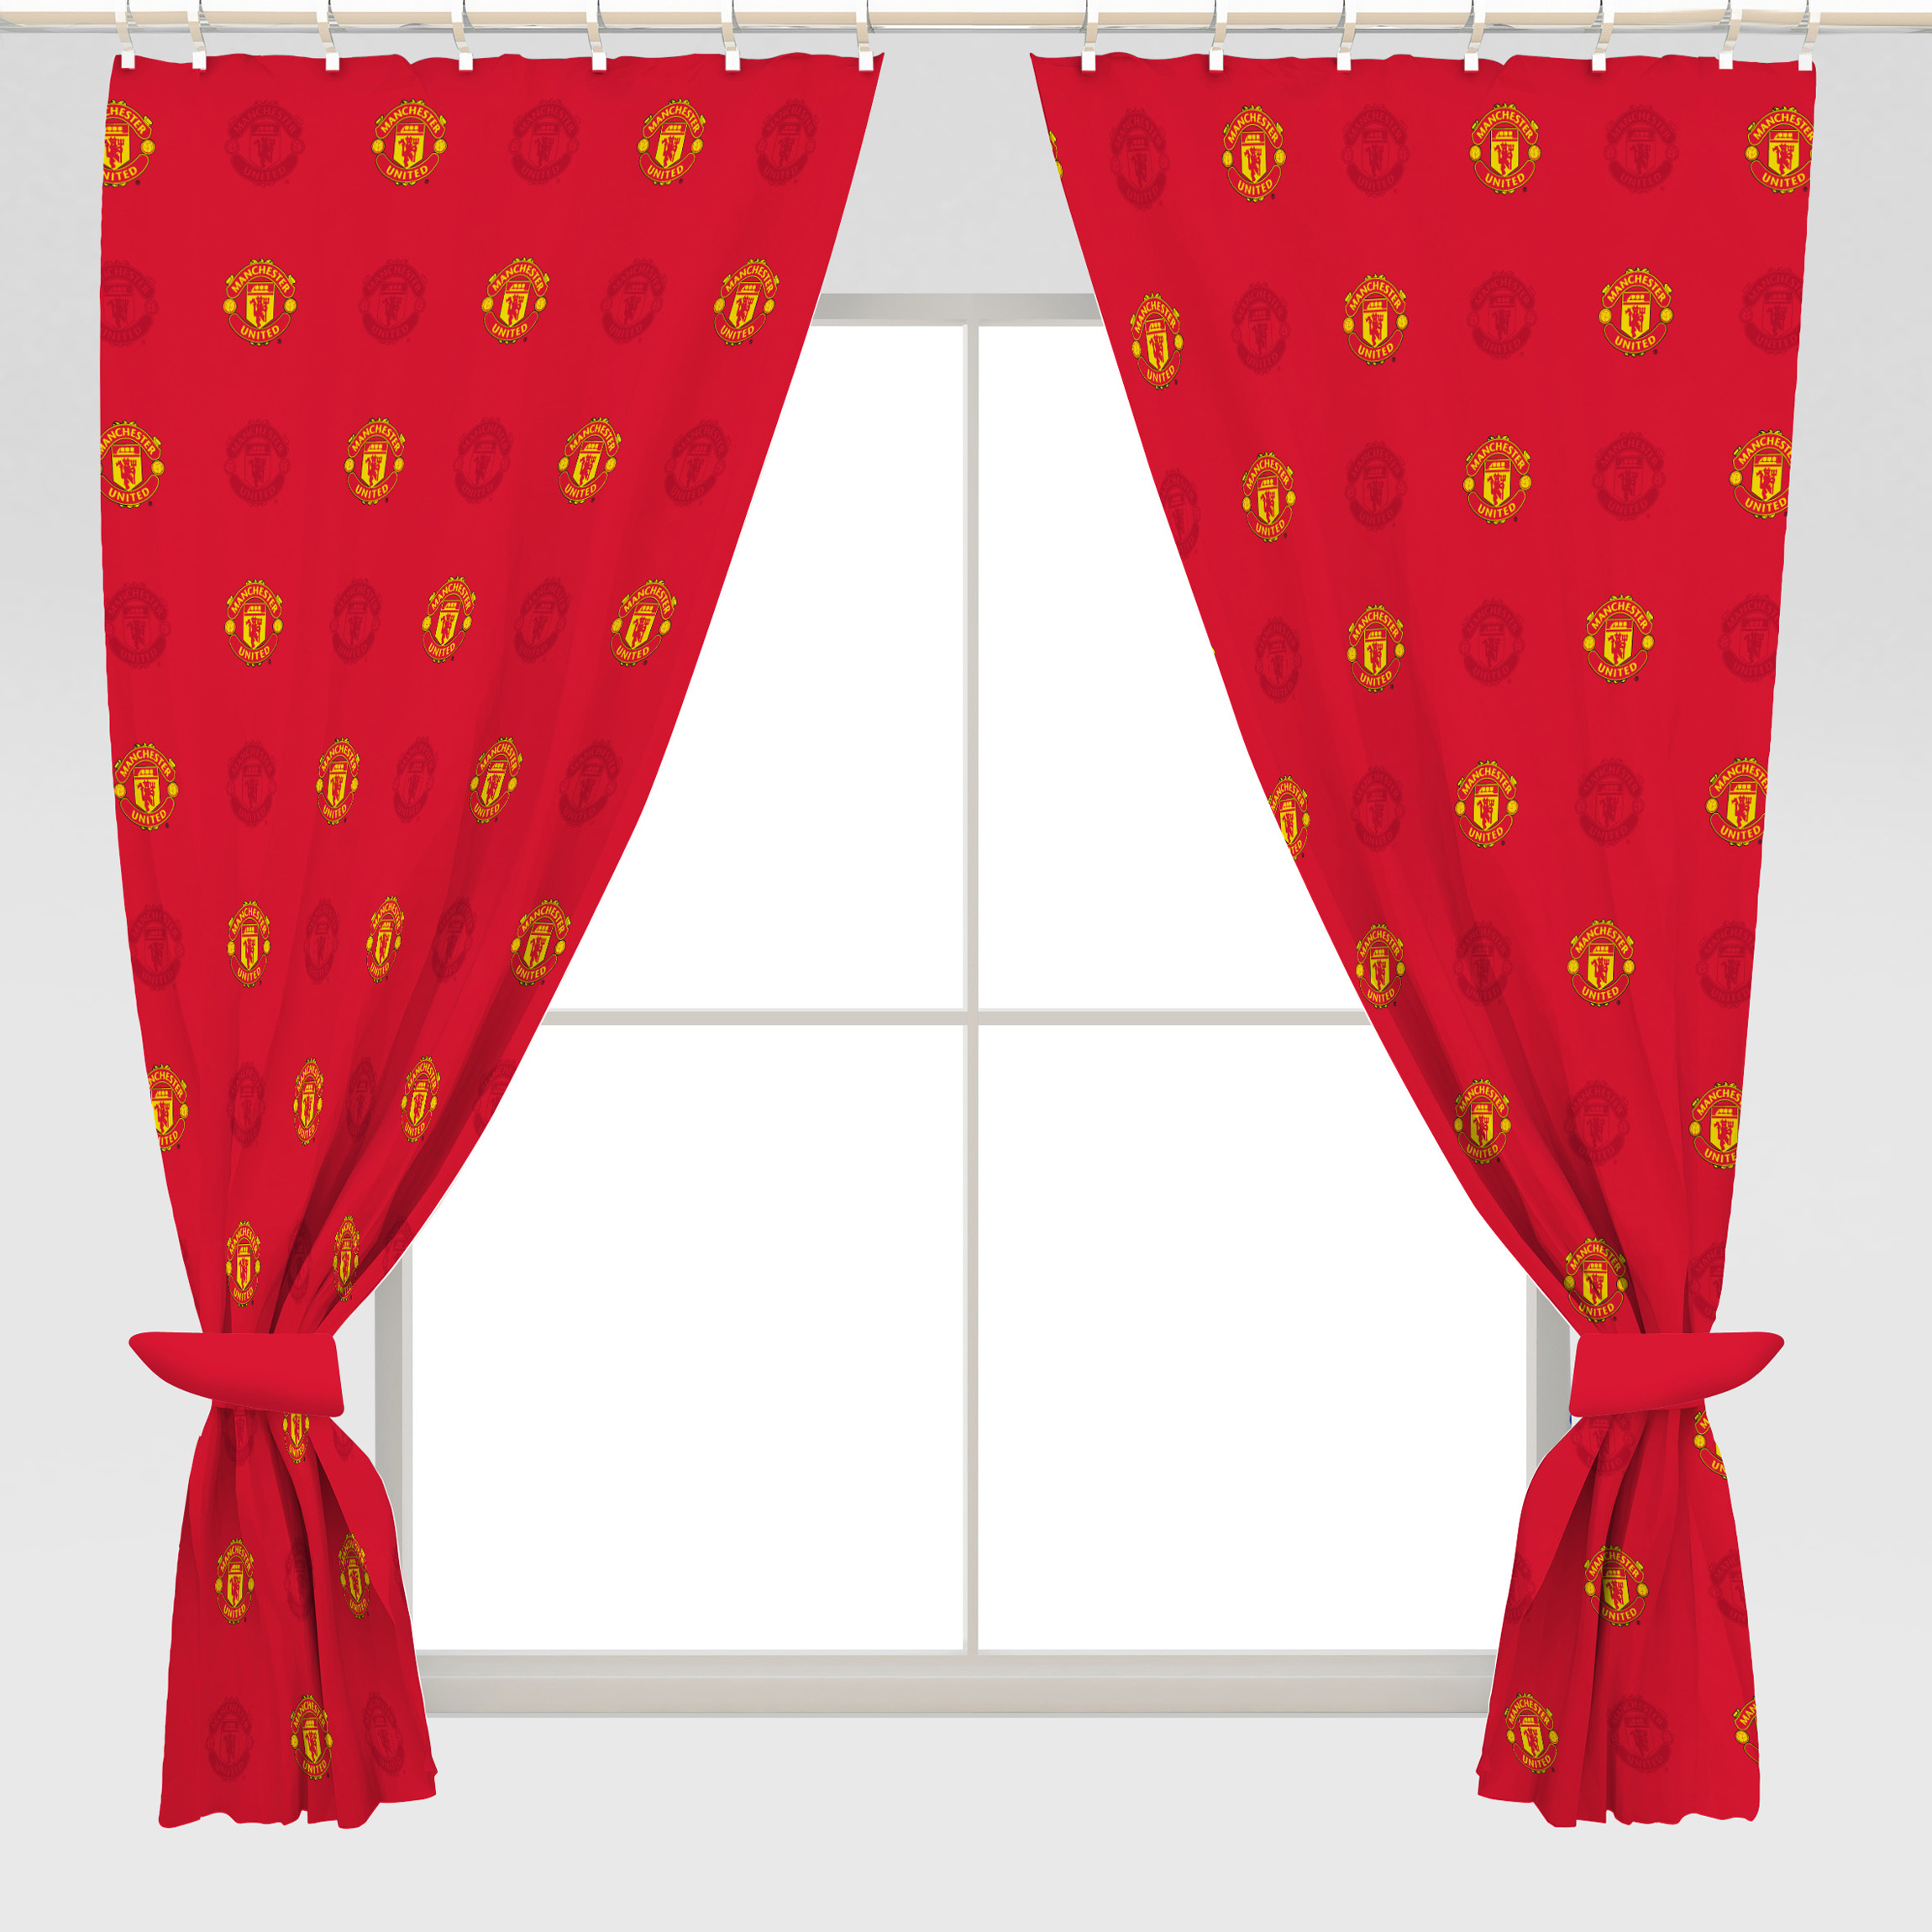 Manchester United Repeat Crest Curtains - 54inch Drop